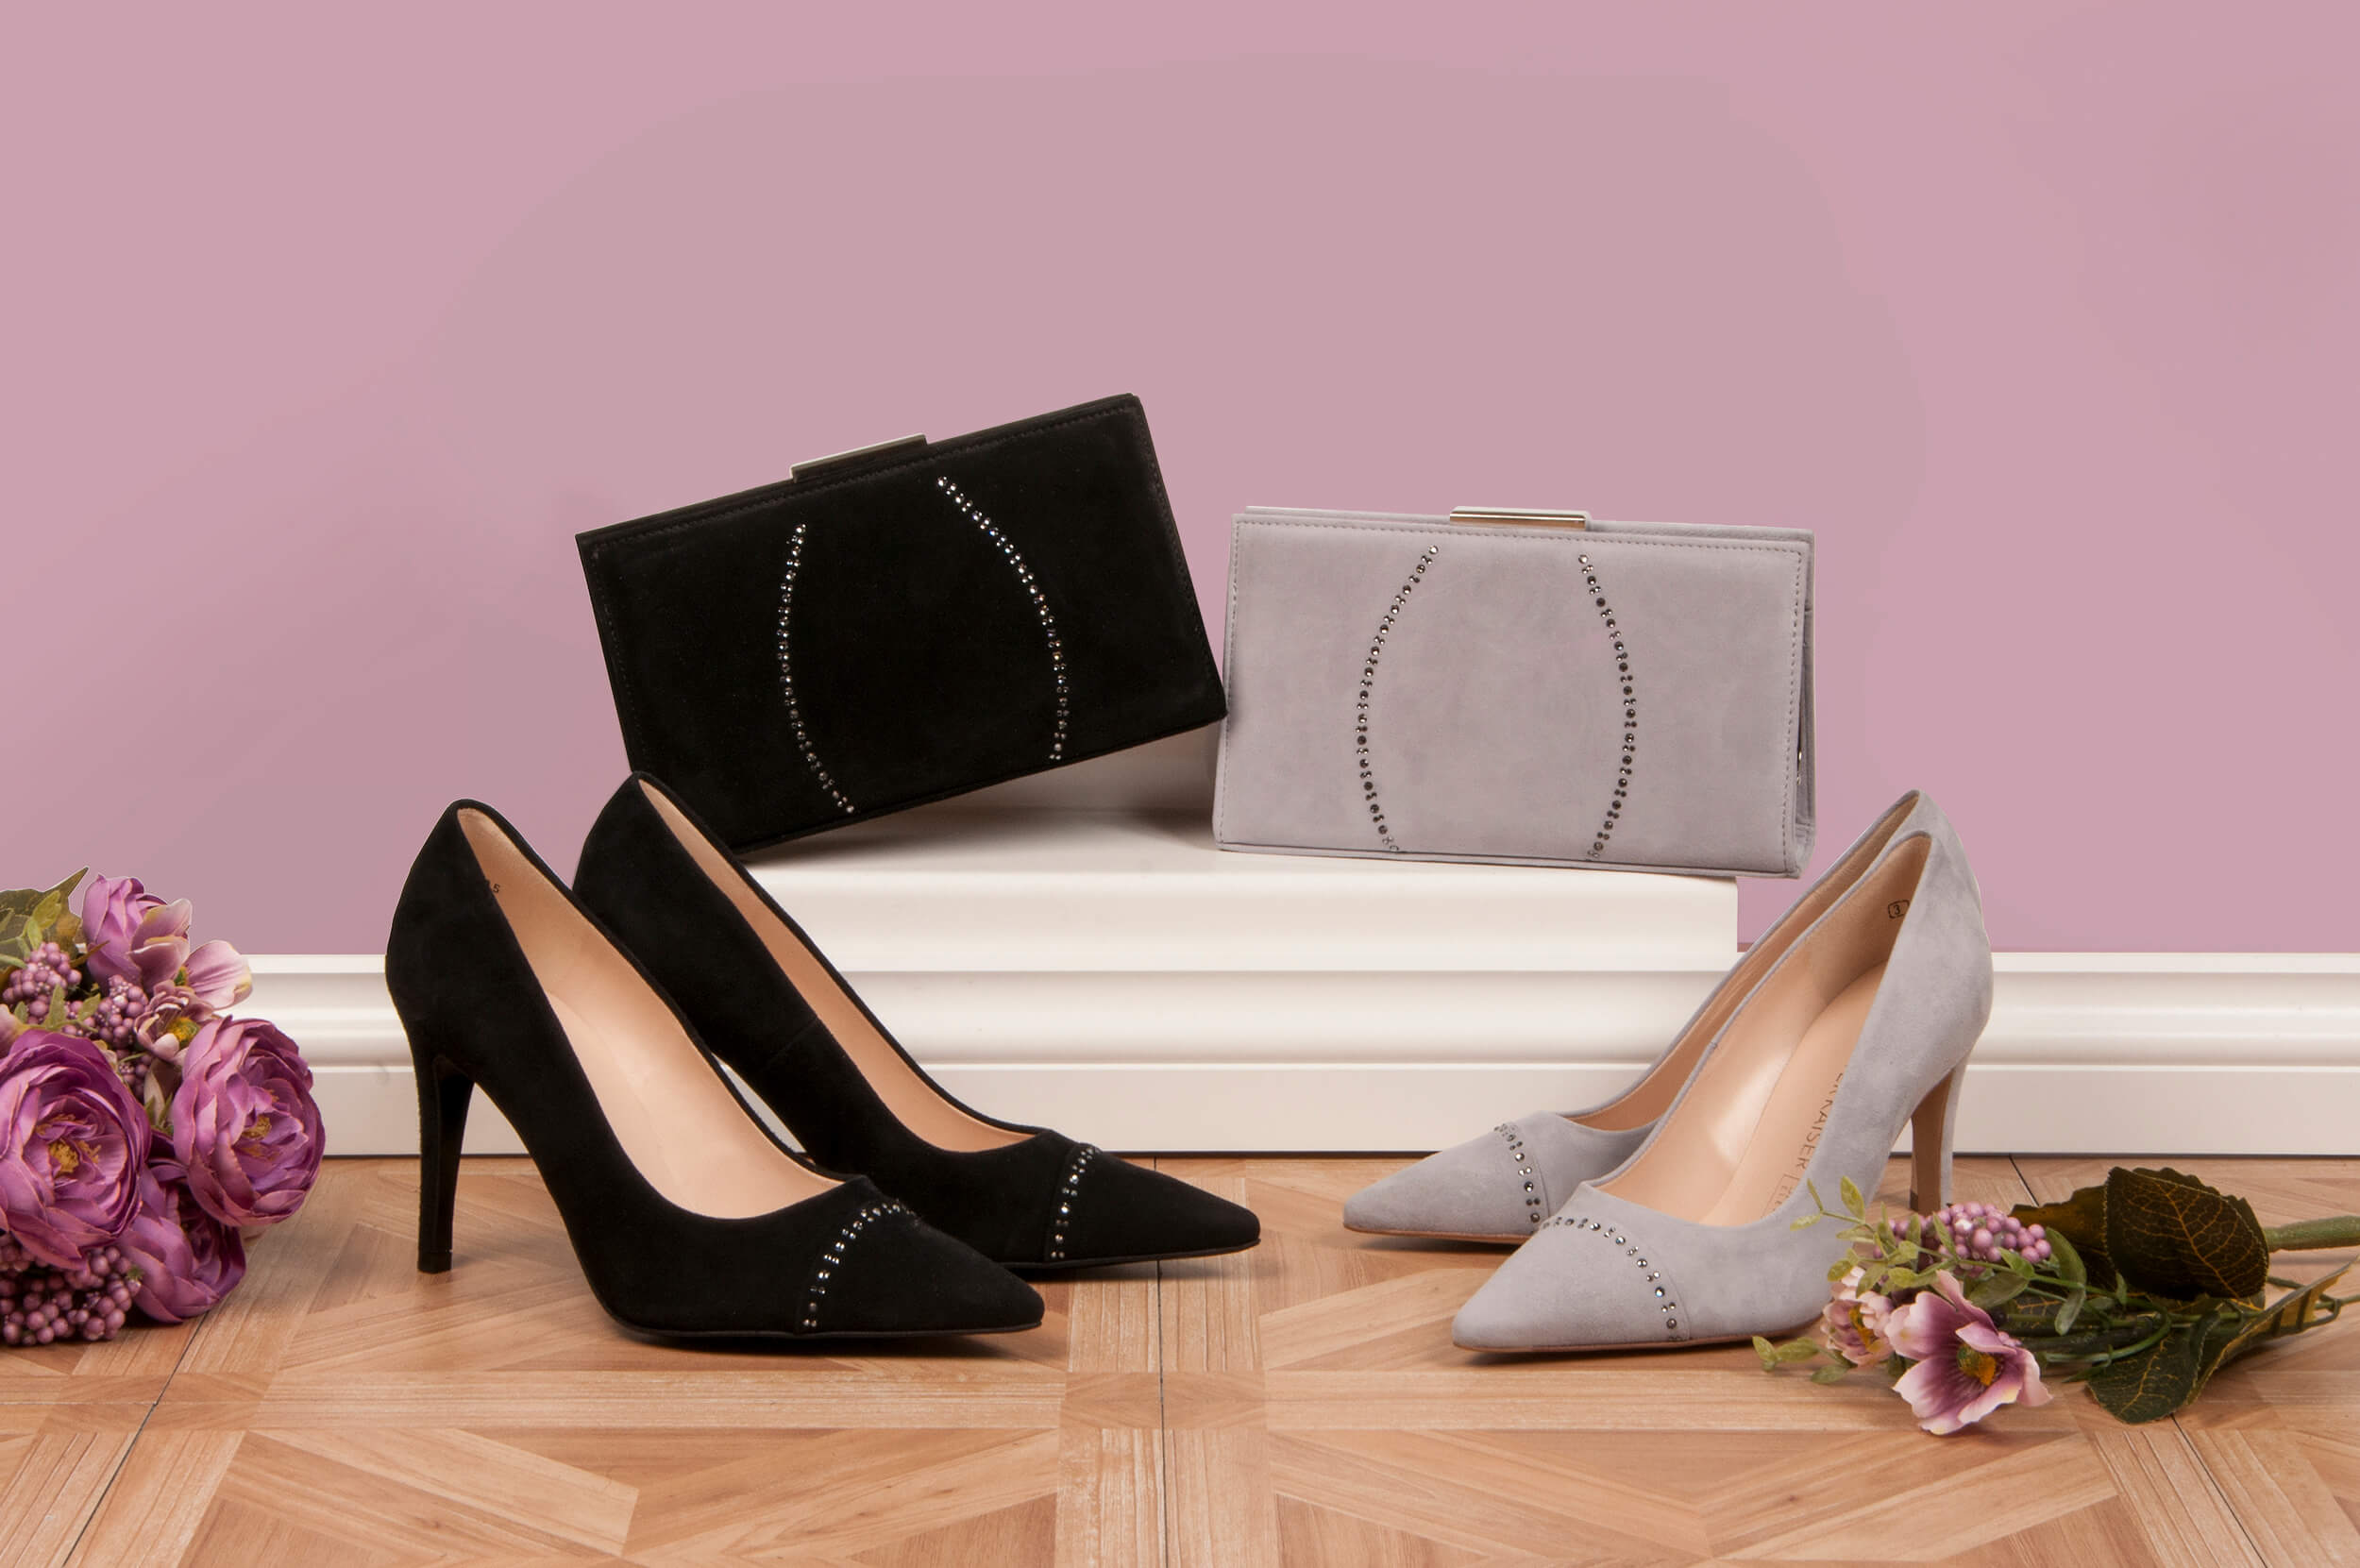 Occasion Shoes And Matching Bags Uk